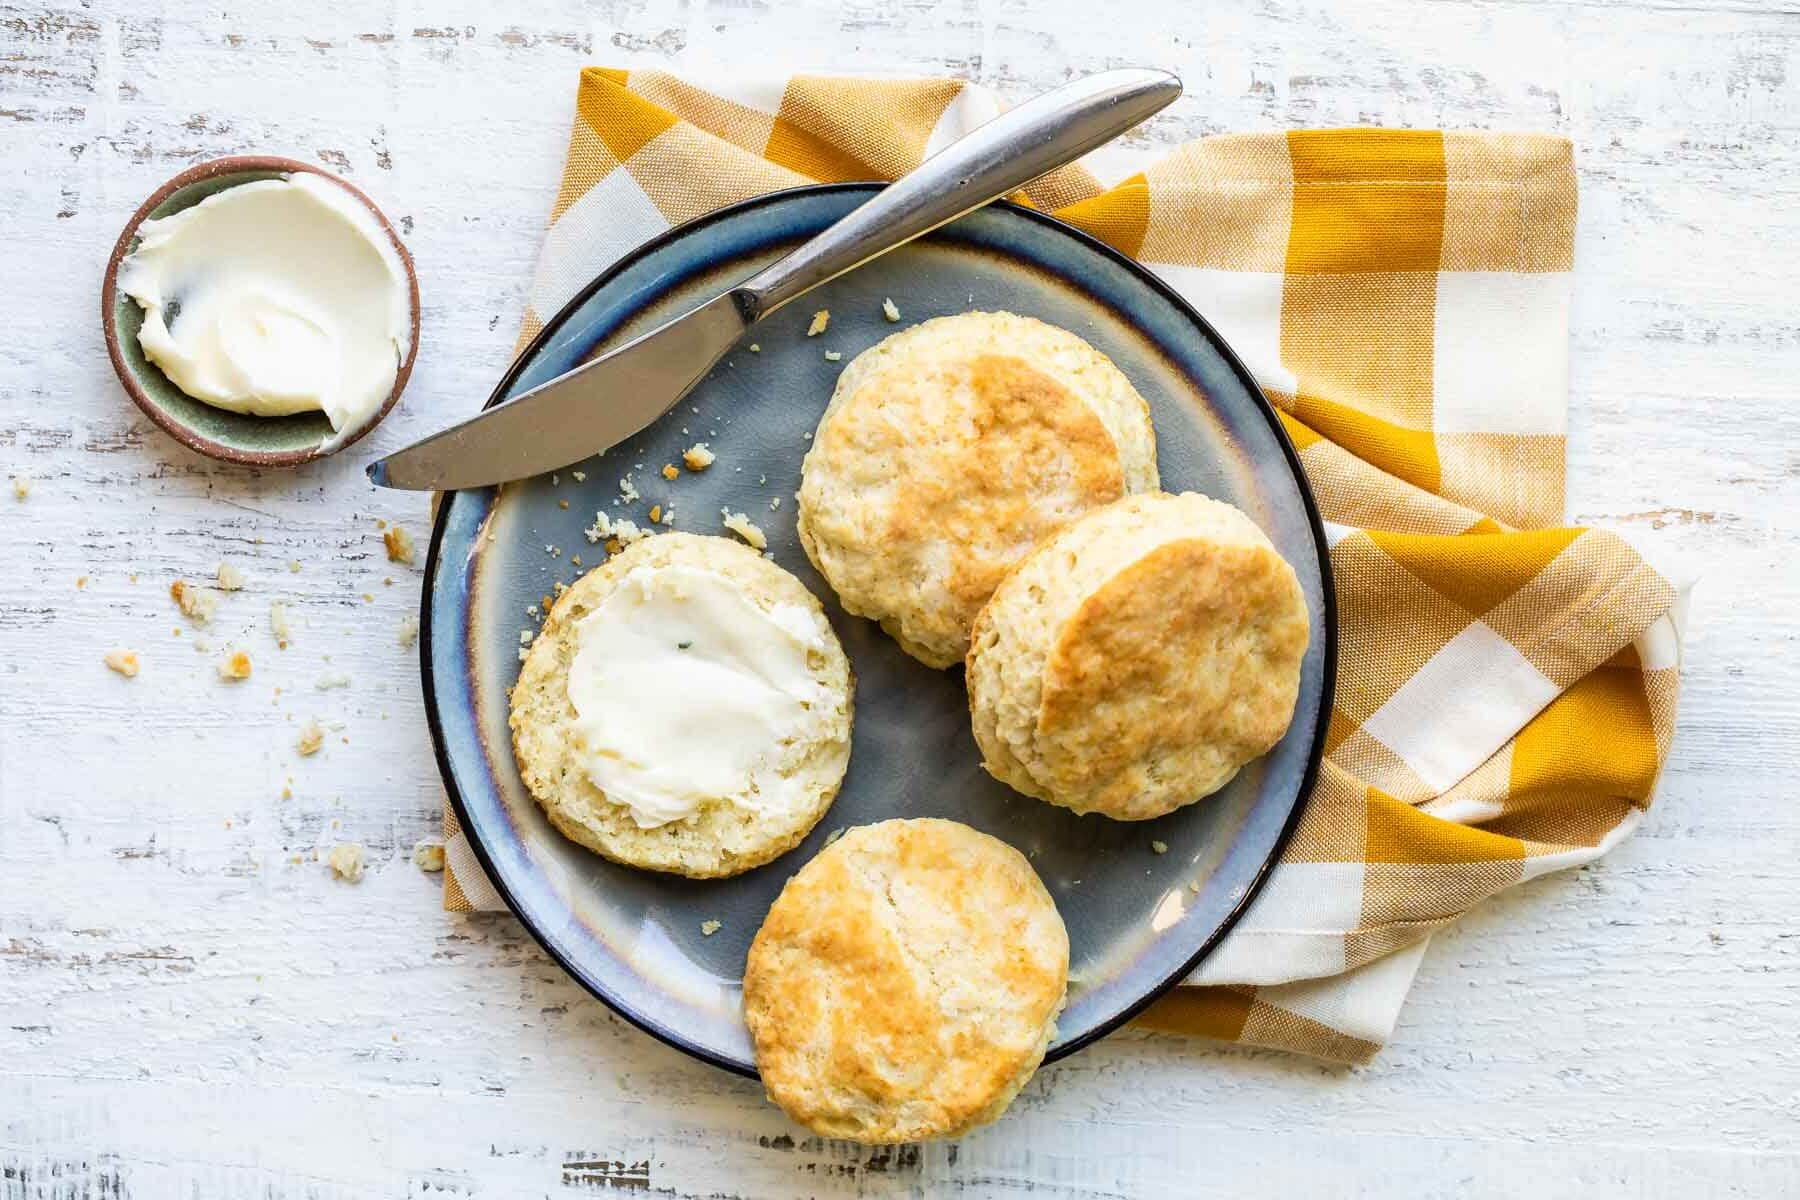 A plate with biscuits cut in half, one piece slathered in butter.